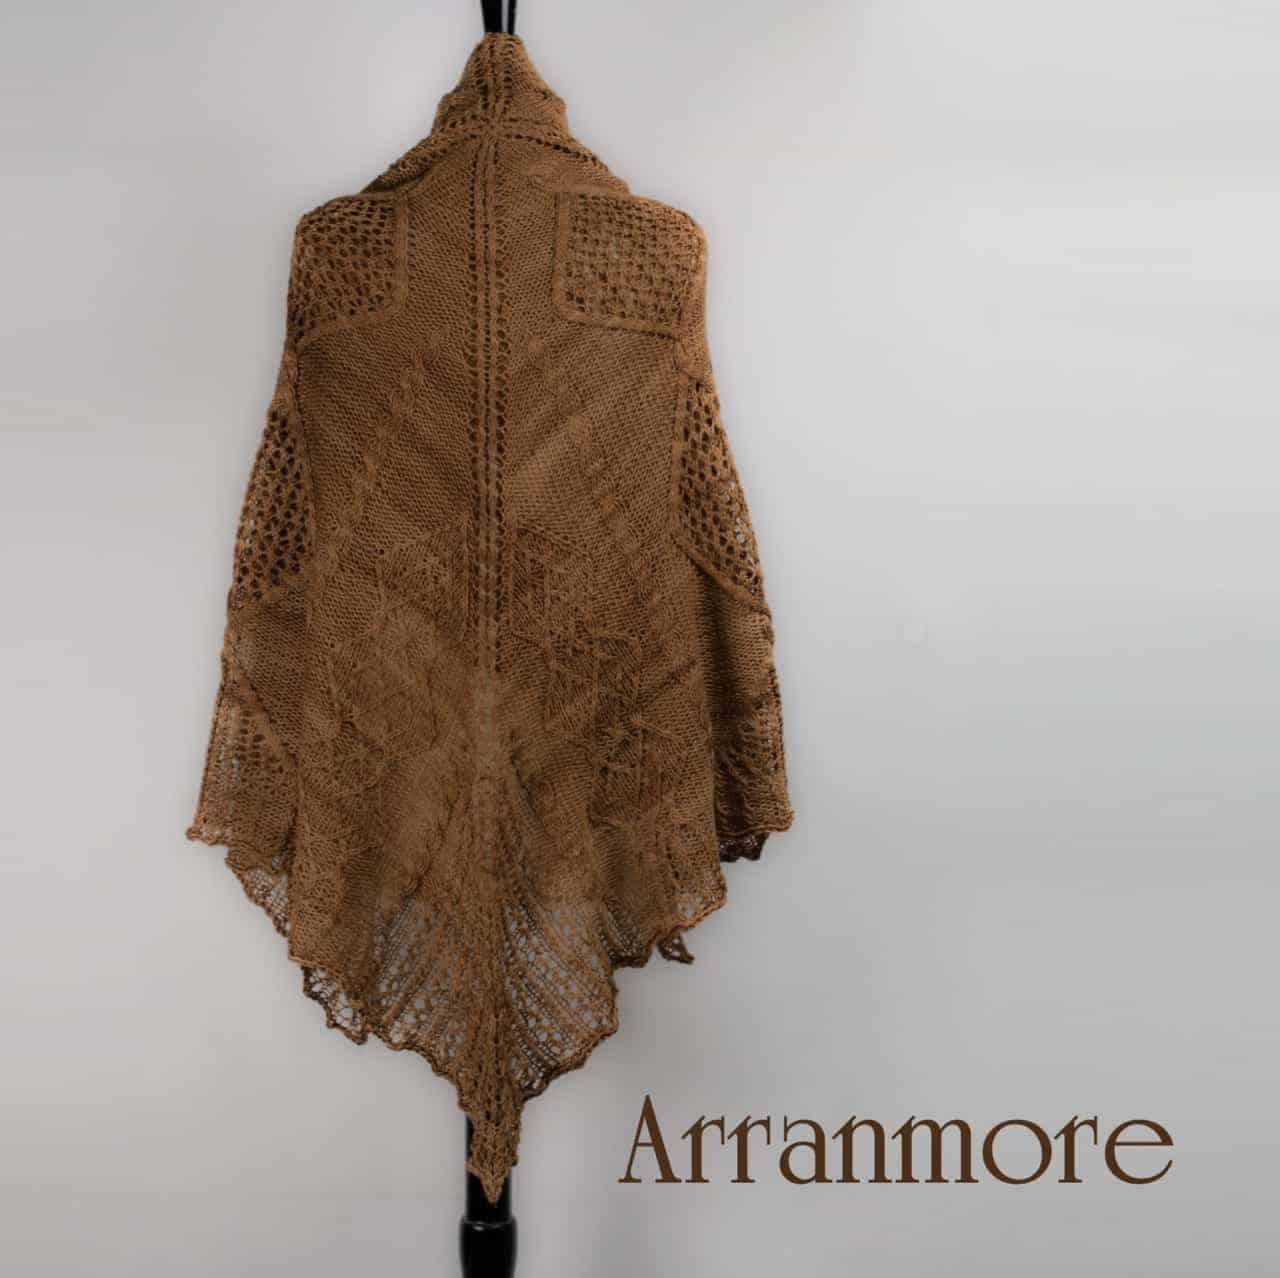 Arranmore Square Kit